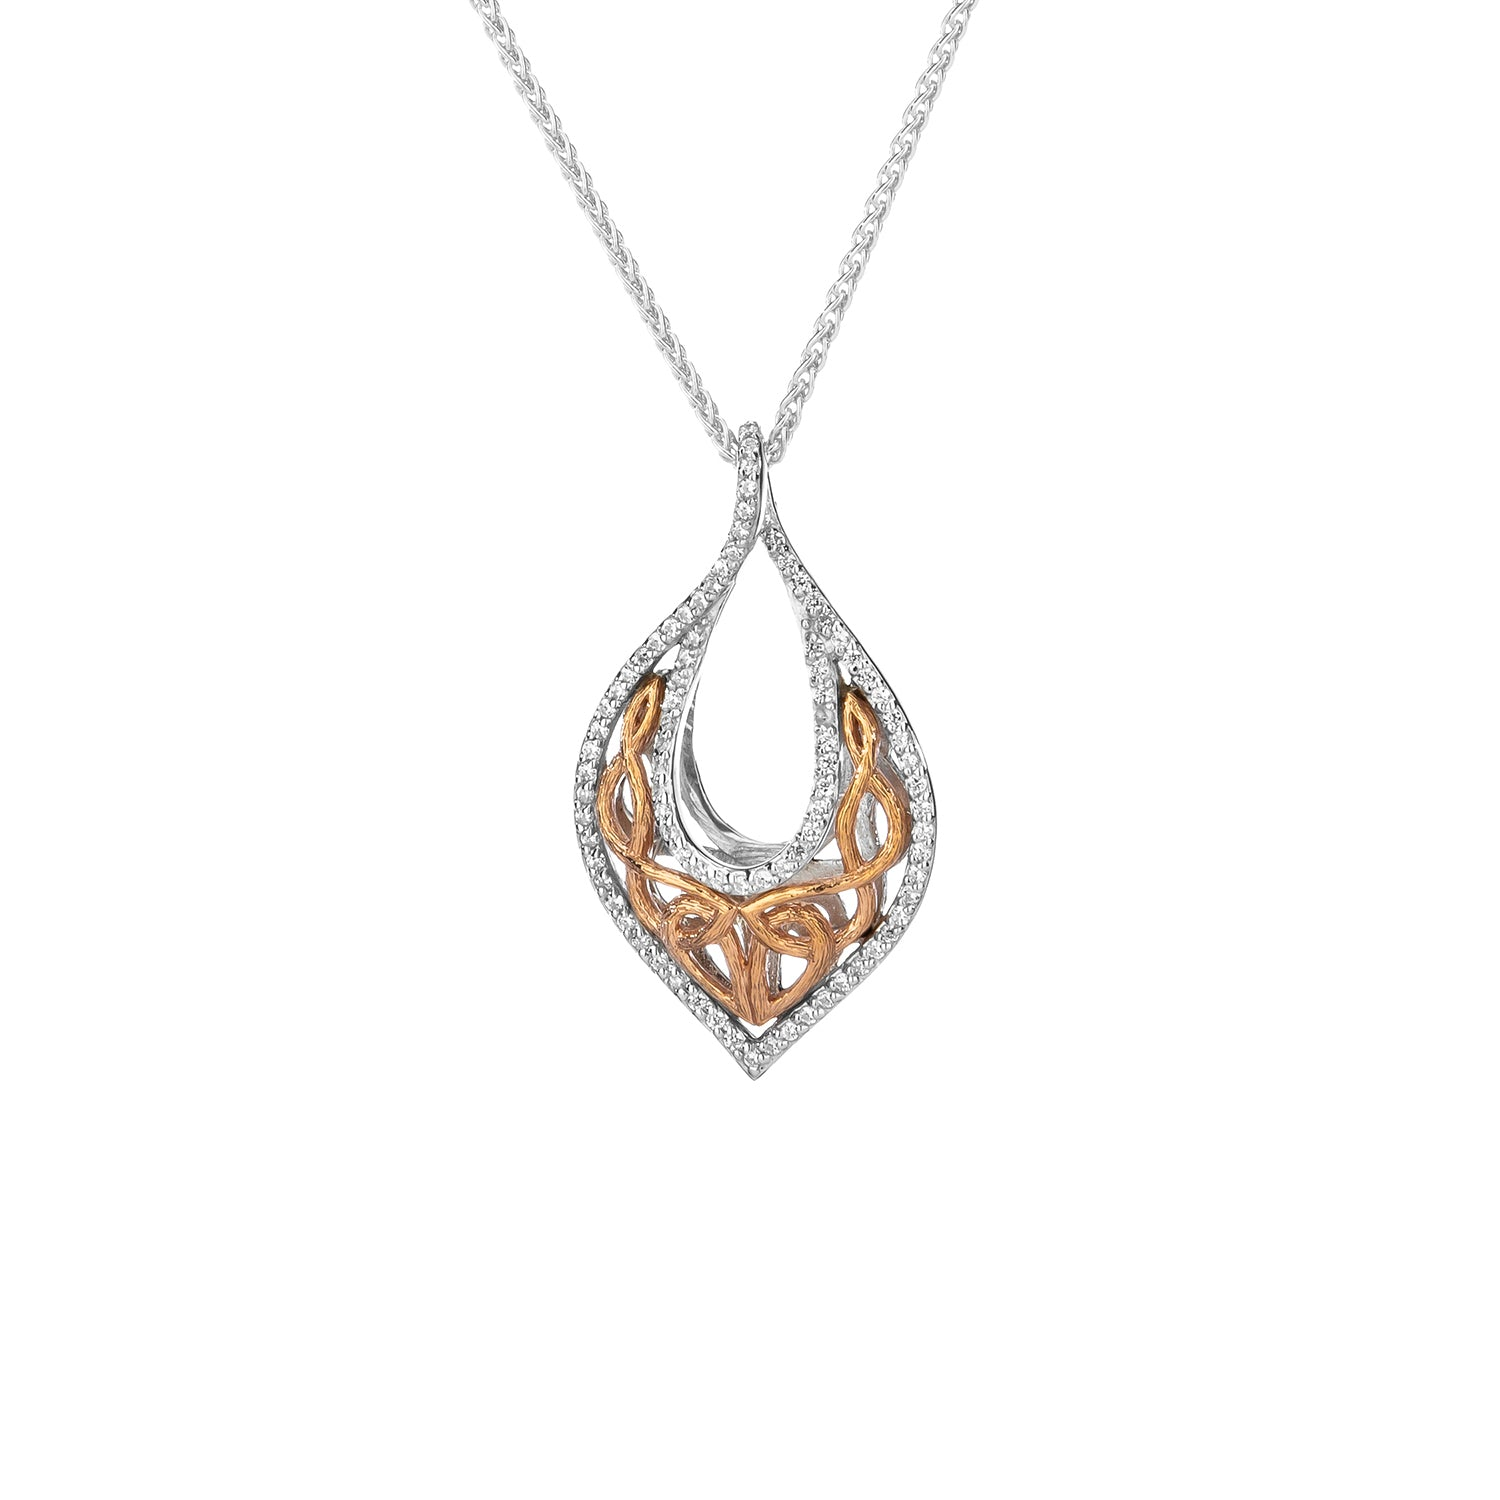 Pendant Rhodium 10k Rose CZ Love's Chalice Pendant from welch and company jewelers near syracuse ny